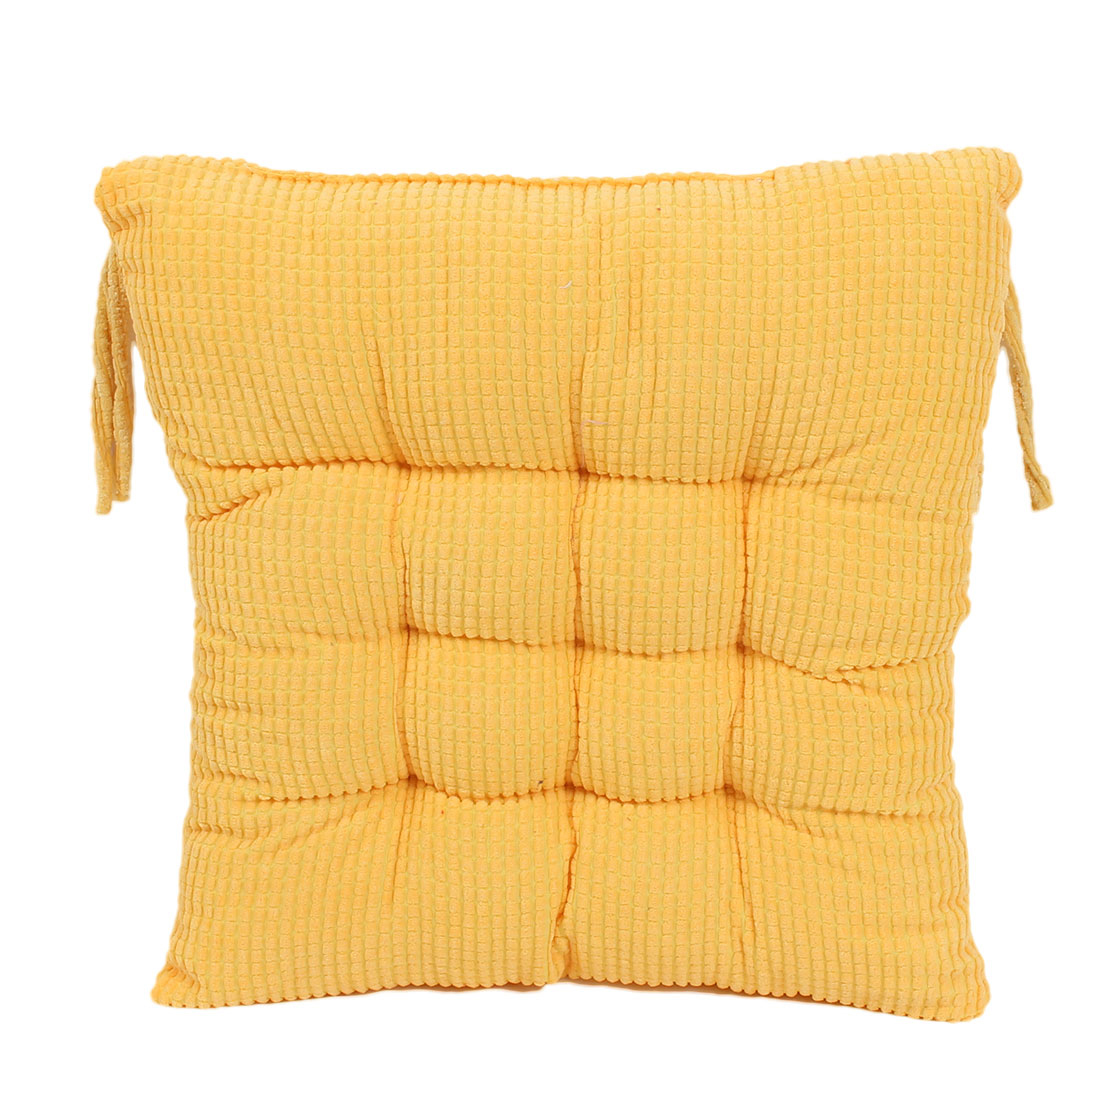 Household Office Corduroy Square Shaped Thickness Chair Cushion Maize yellow